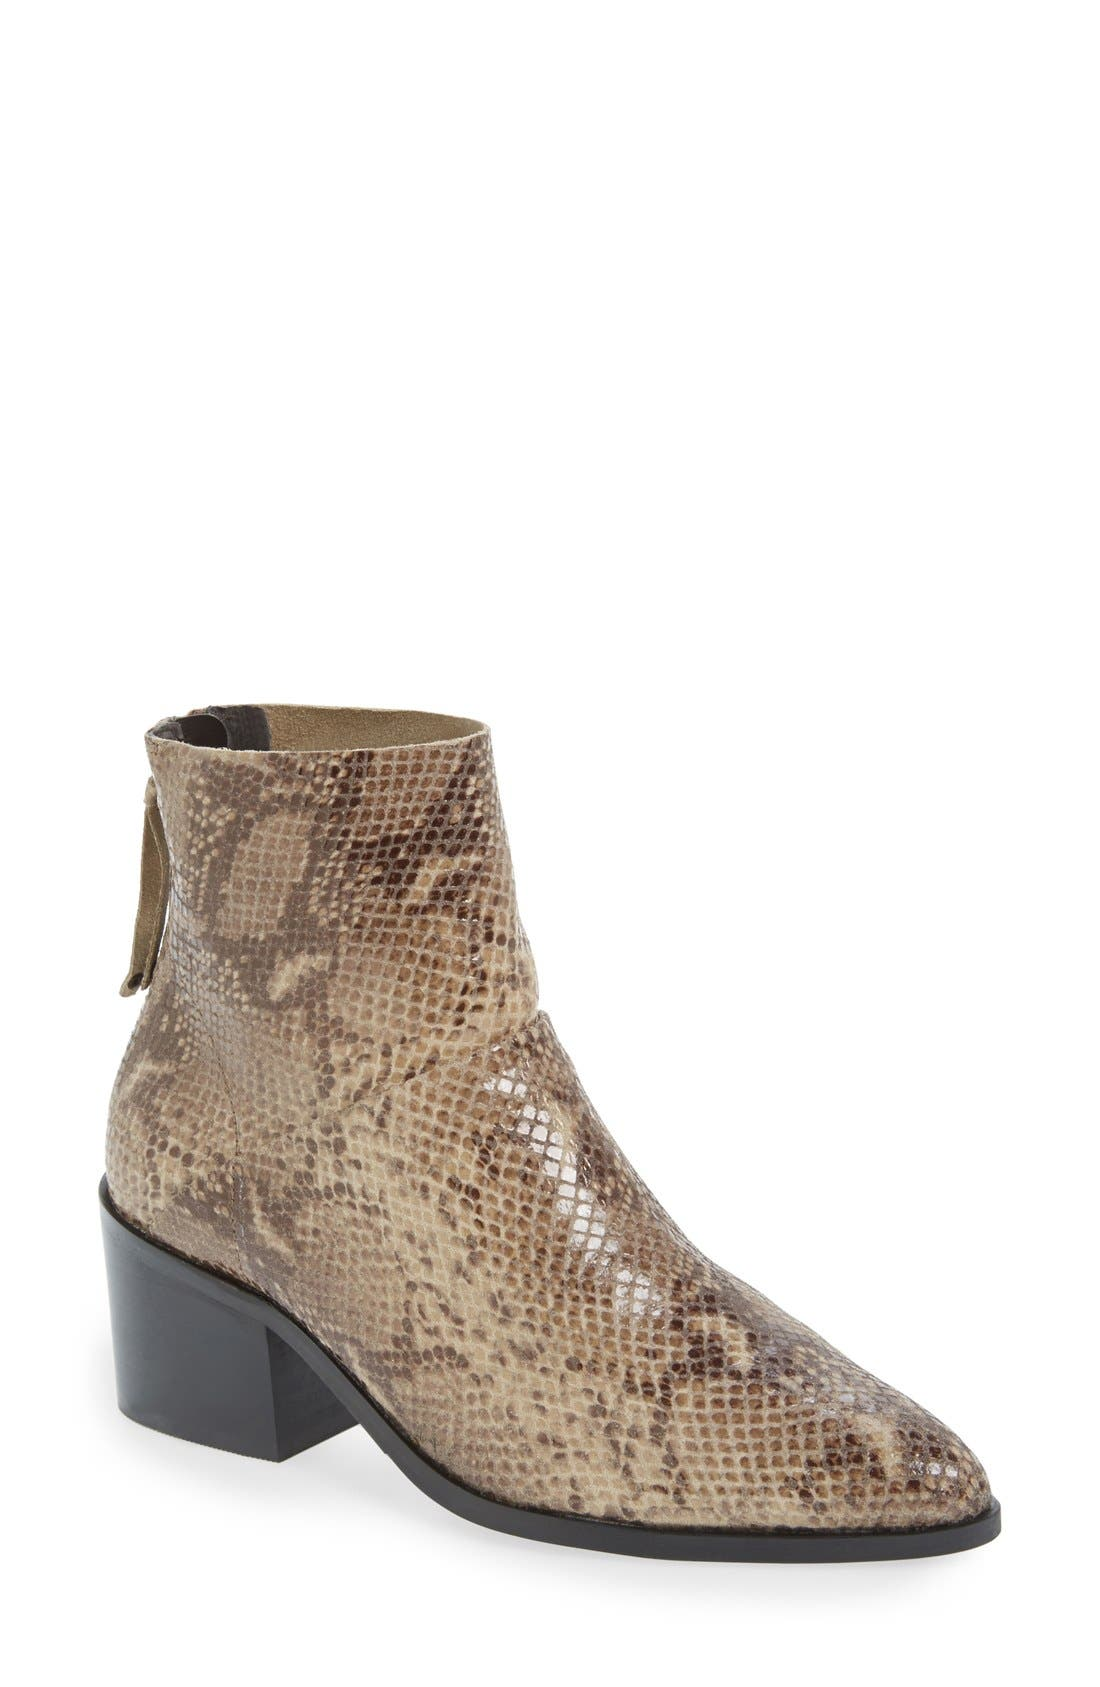 Main Image - Topshop 'Midnight' Snake Embossed Ankle Boot (Women)